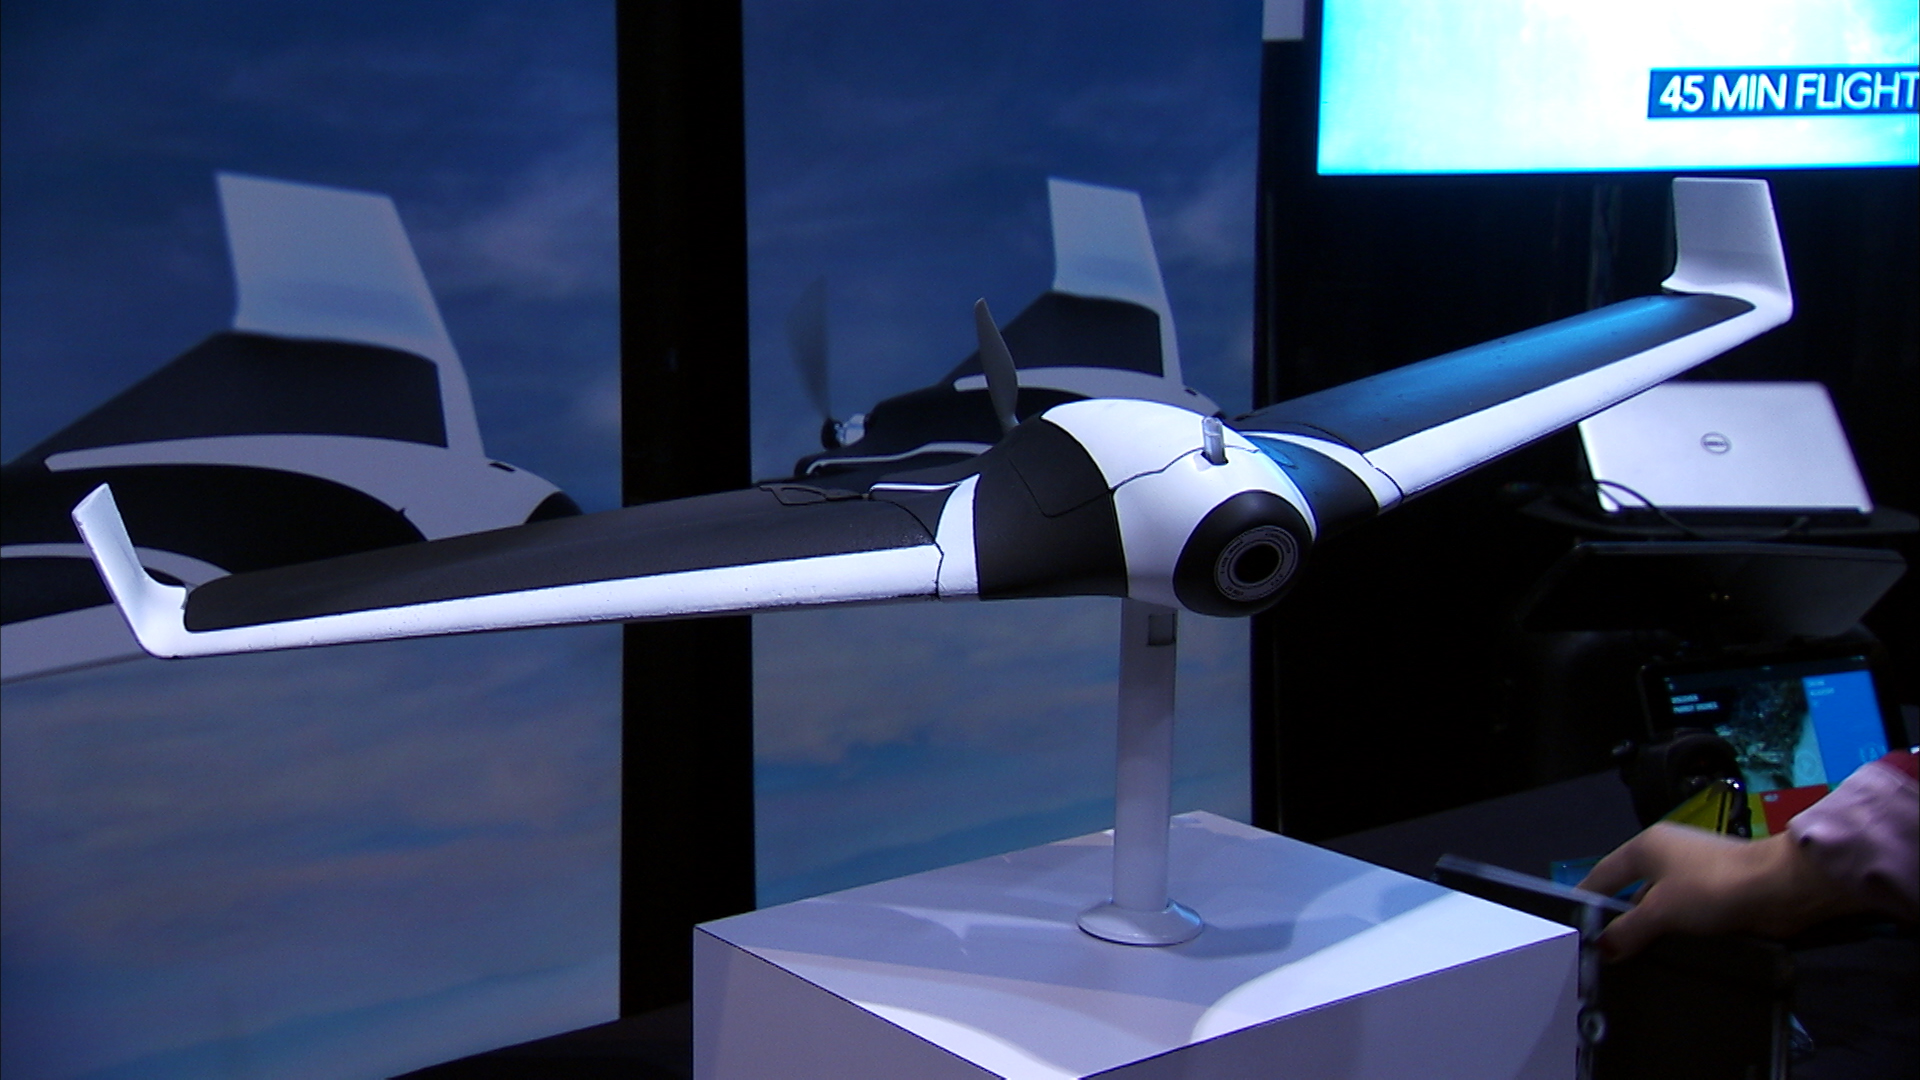 Video: Parrot Disco fixed-wing drone (almost) takes to the sky